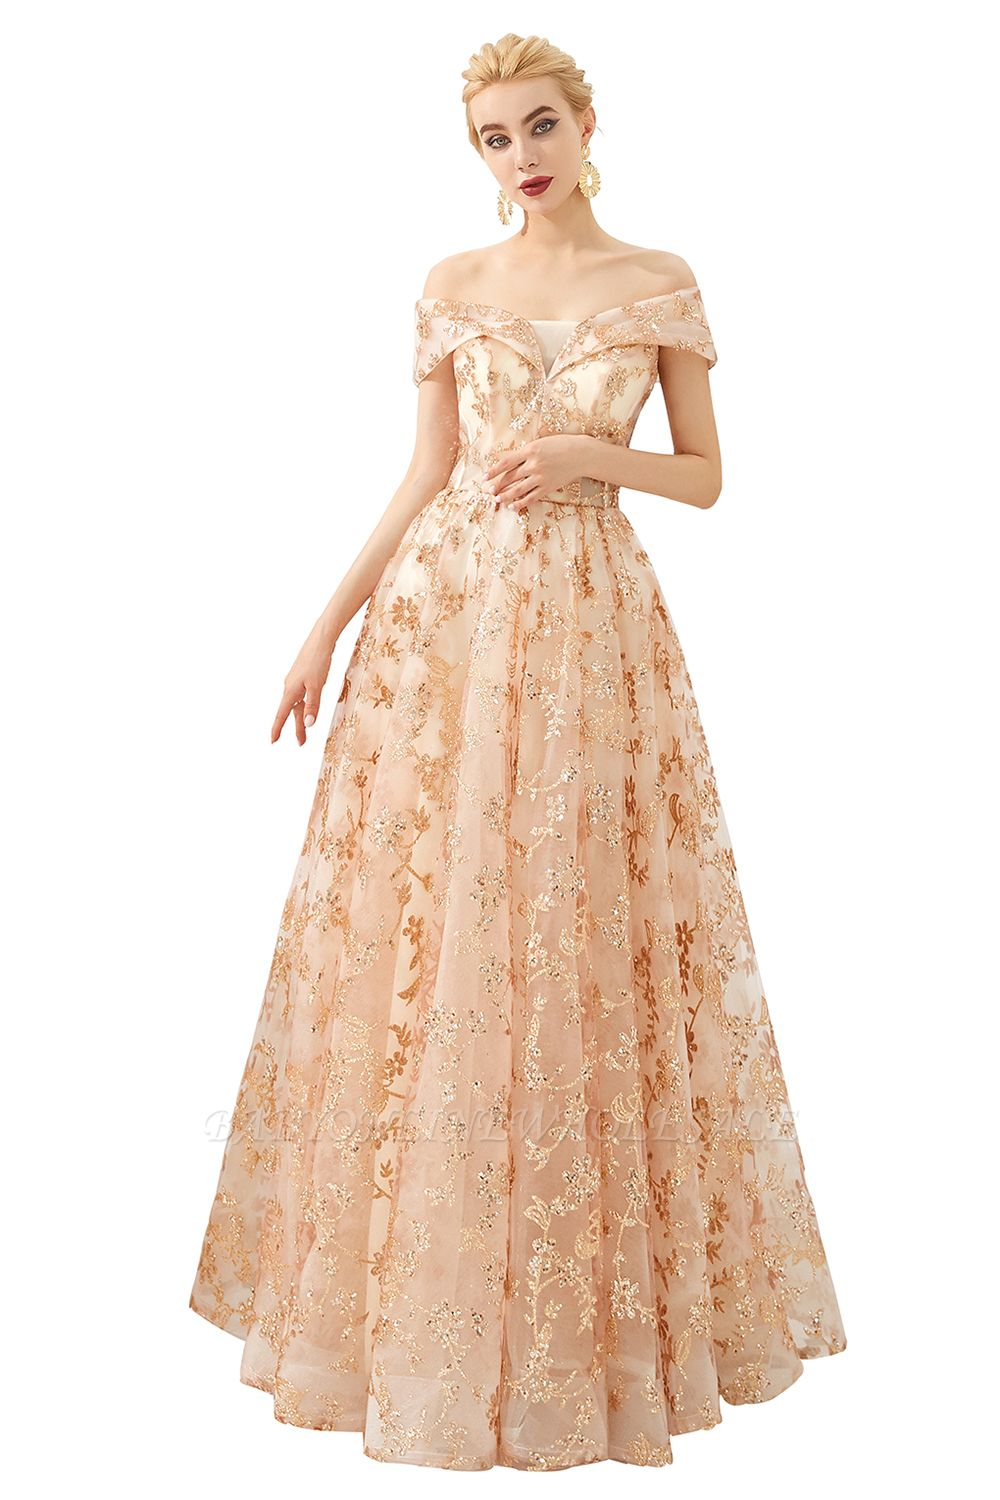 Hale | Romantic Off-the-shoudler Rose Gold Lace-up Tulle Prom Dress with Sparkly Appliques